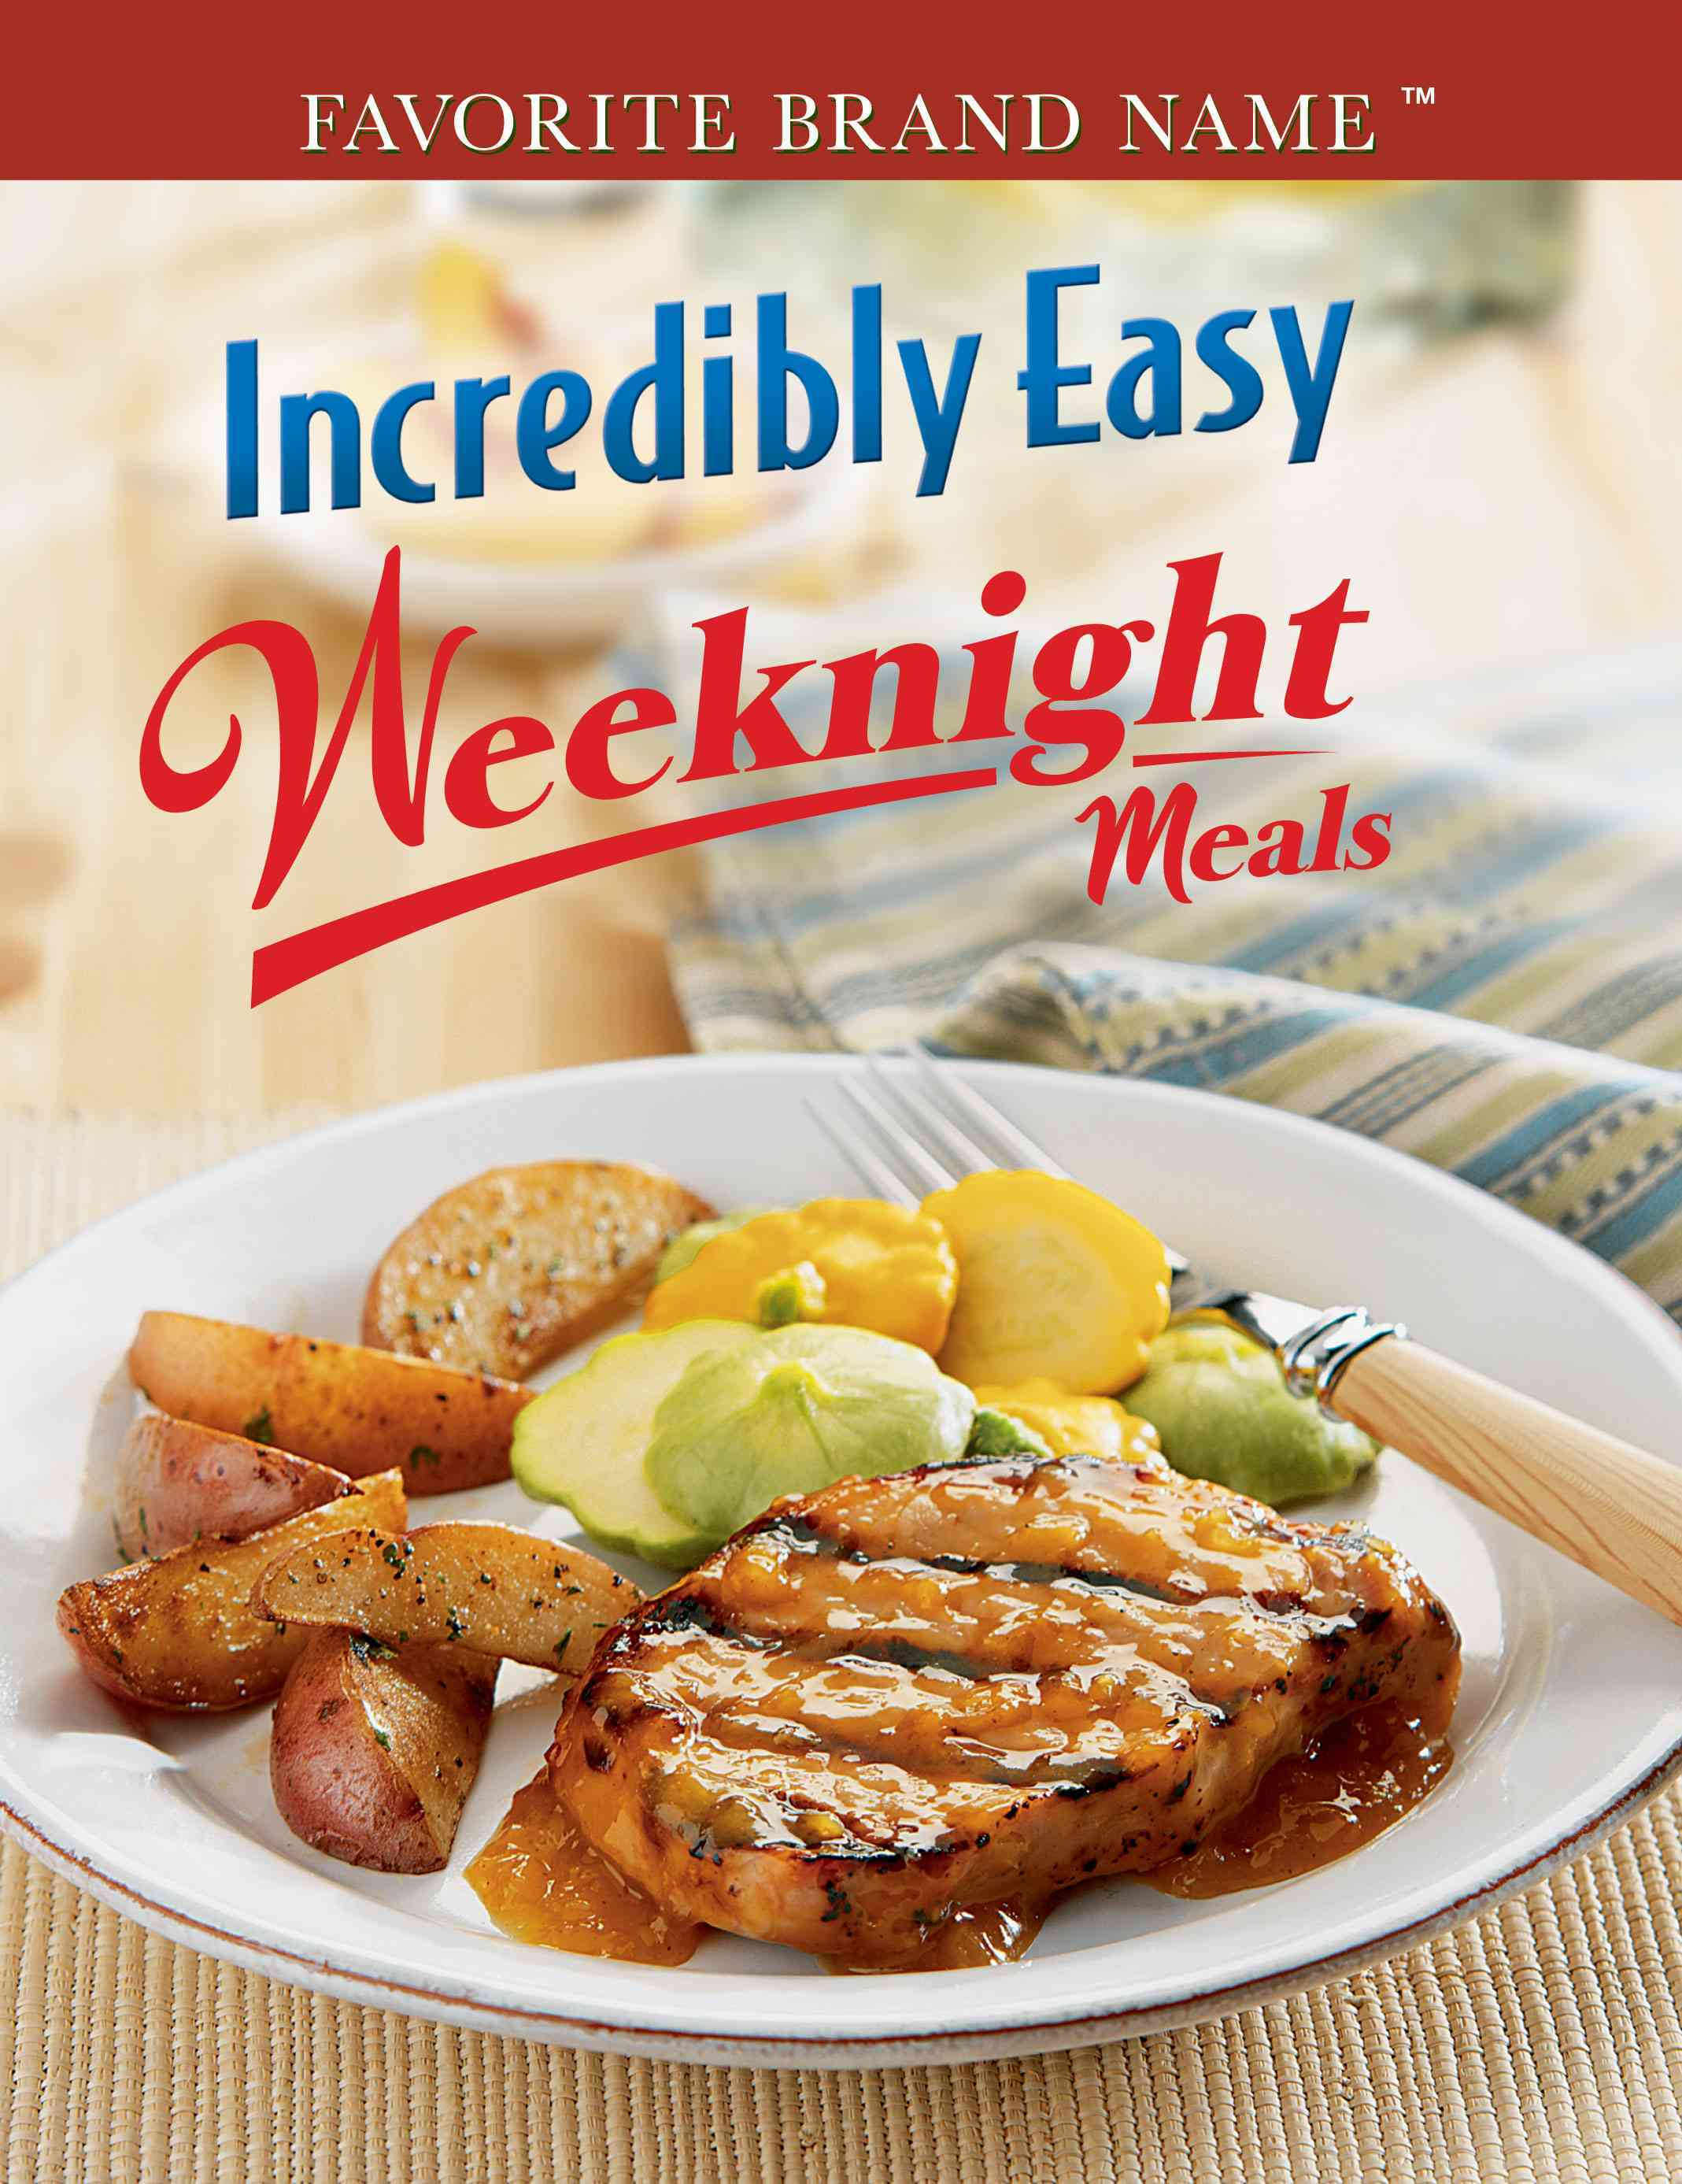 Incredibly Easy Weeknight Meals (Spiral bound)